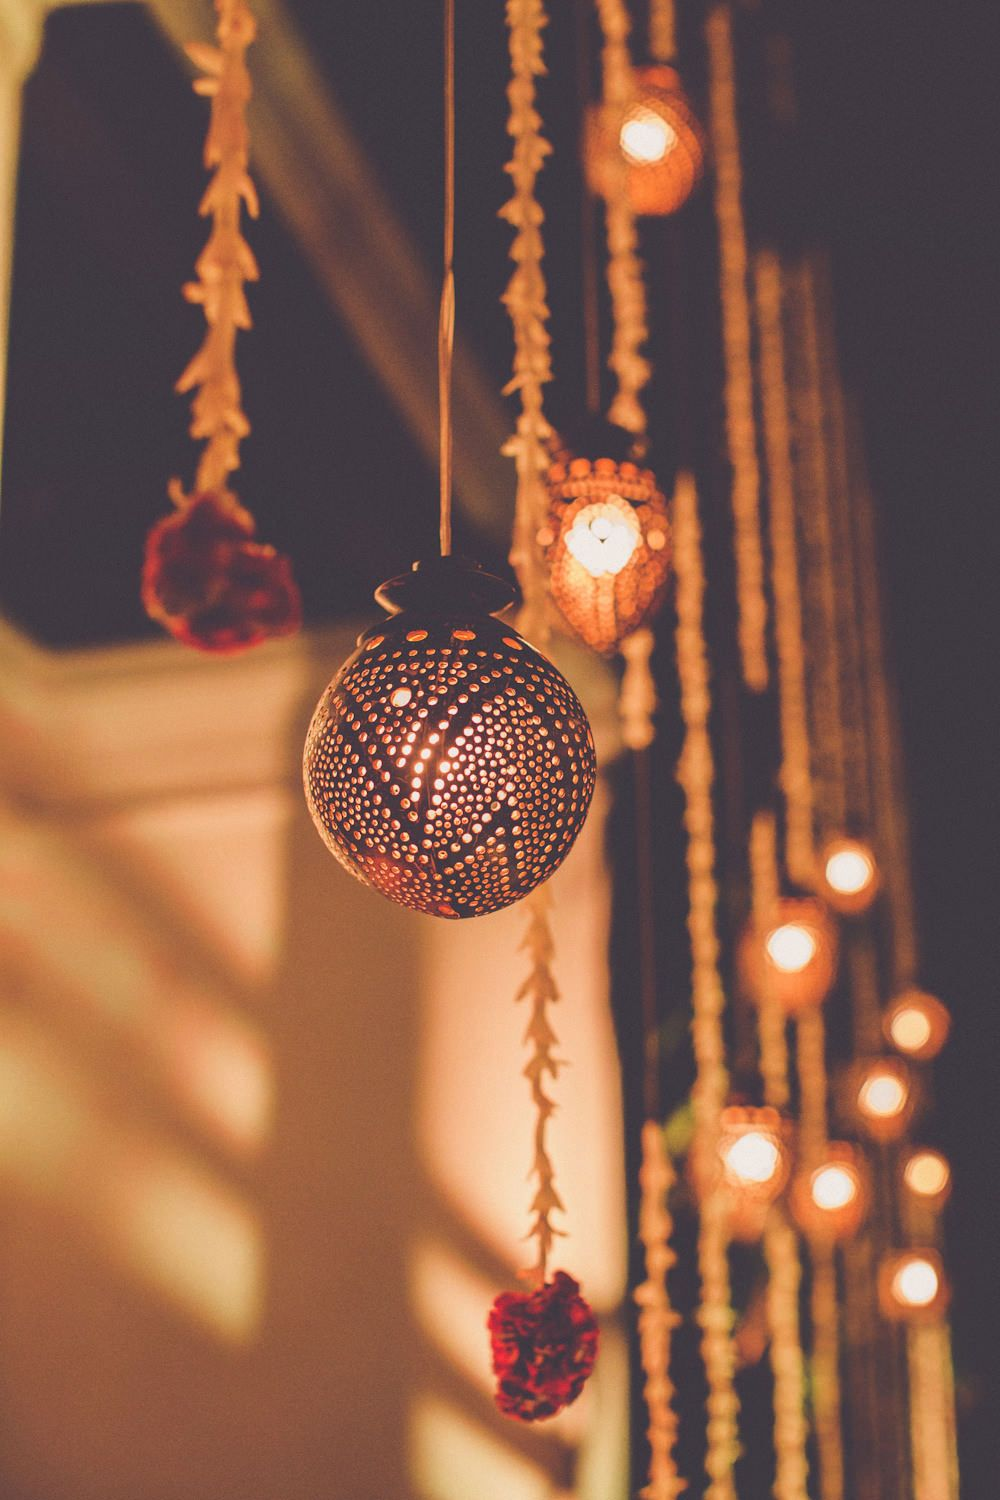 Wedding decoration ideas kerala  A Kerala wedding in India with an ivory and gold bridal sari and